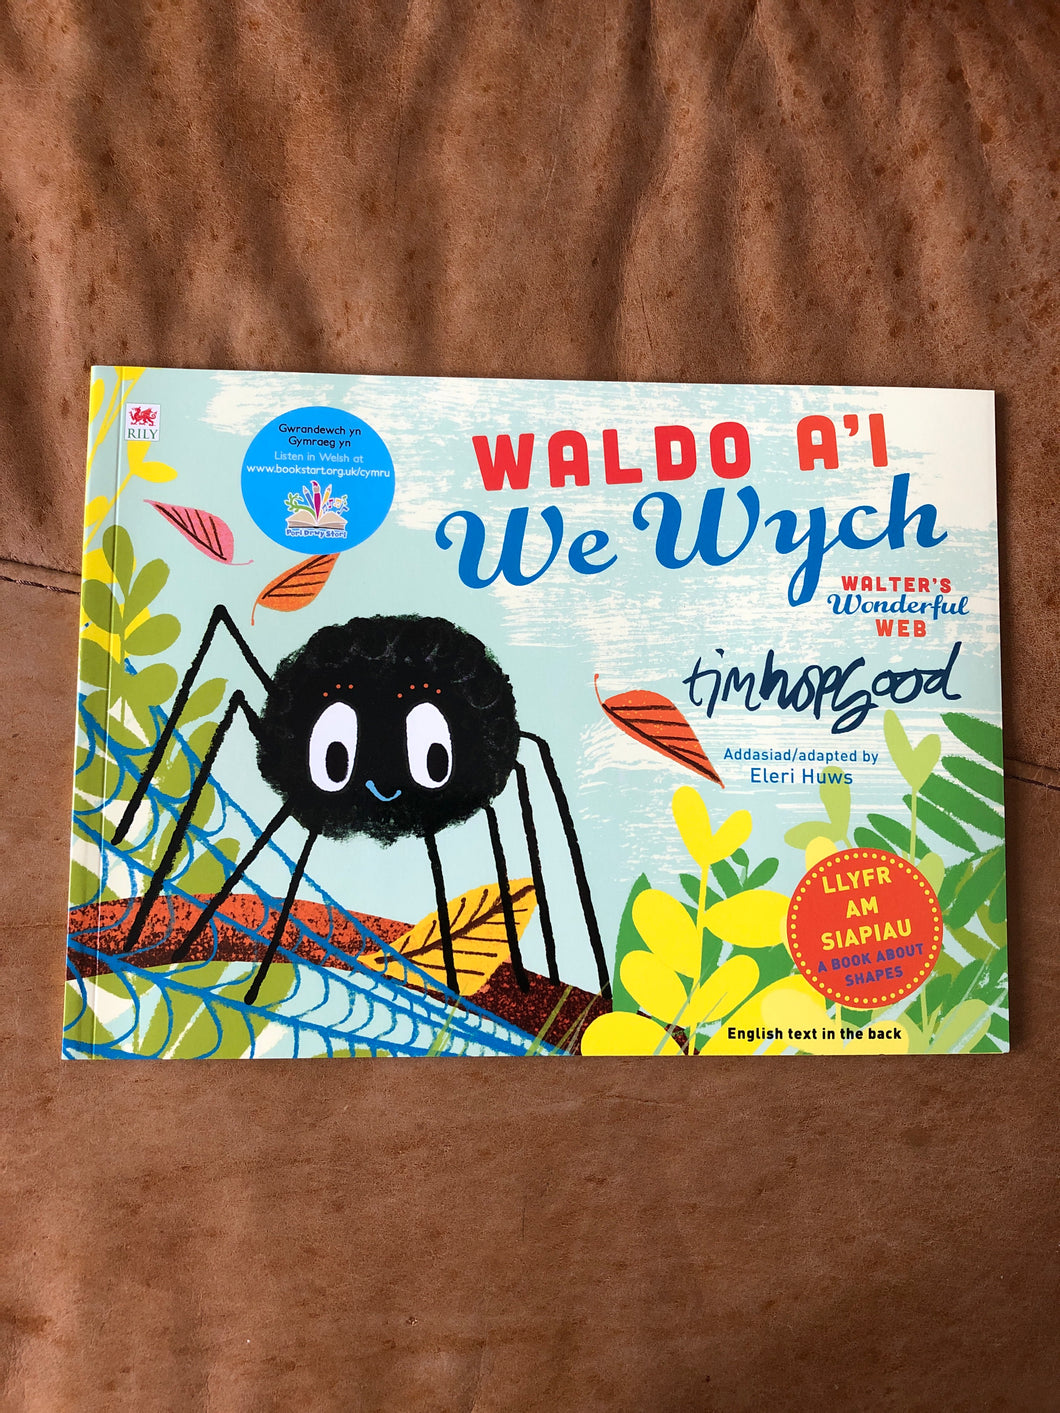 Waldo a'i We Wych - Walter's Wonderful Web